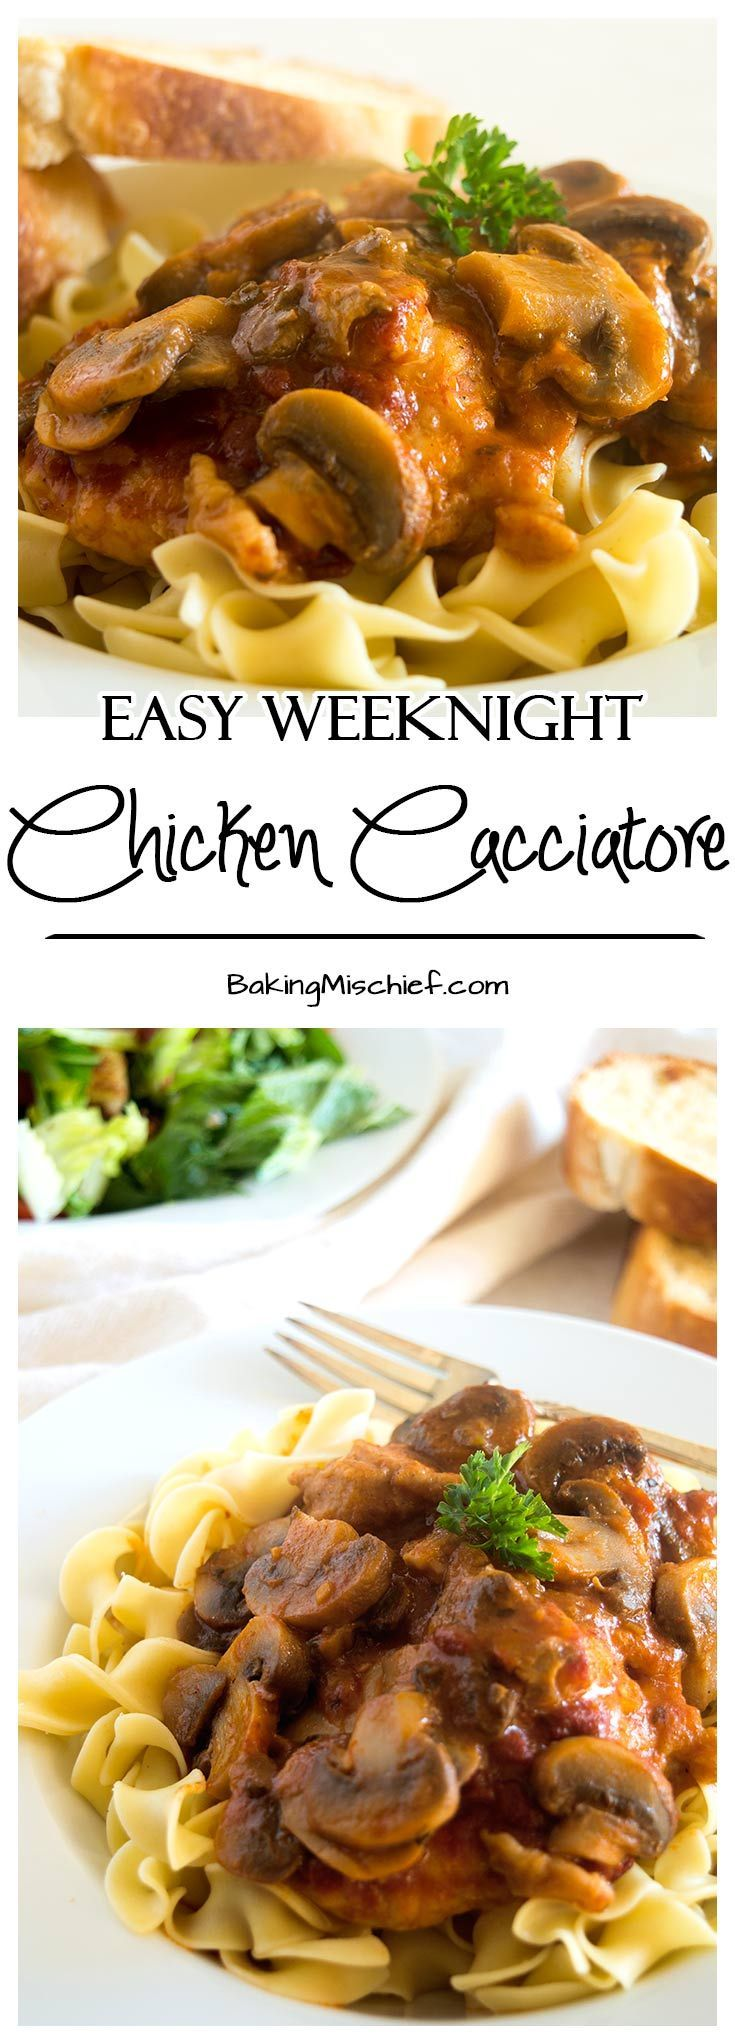 Best Boneless Chicken Breast Recipes - The Daily Meal